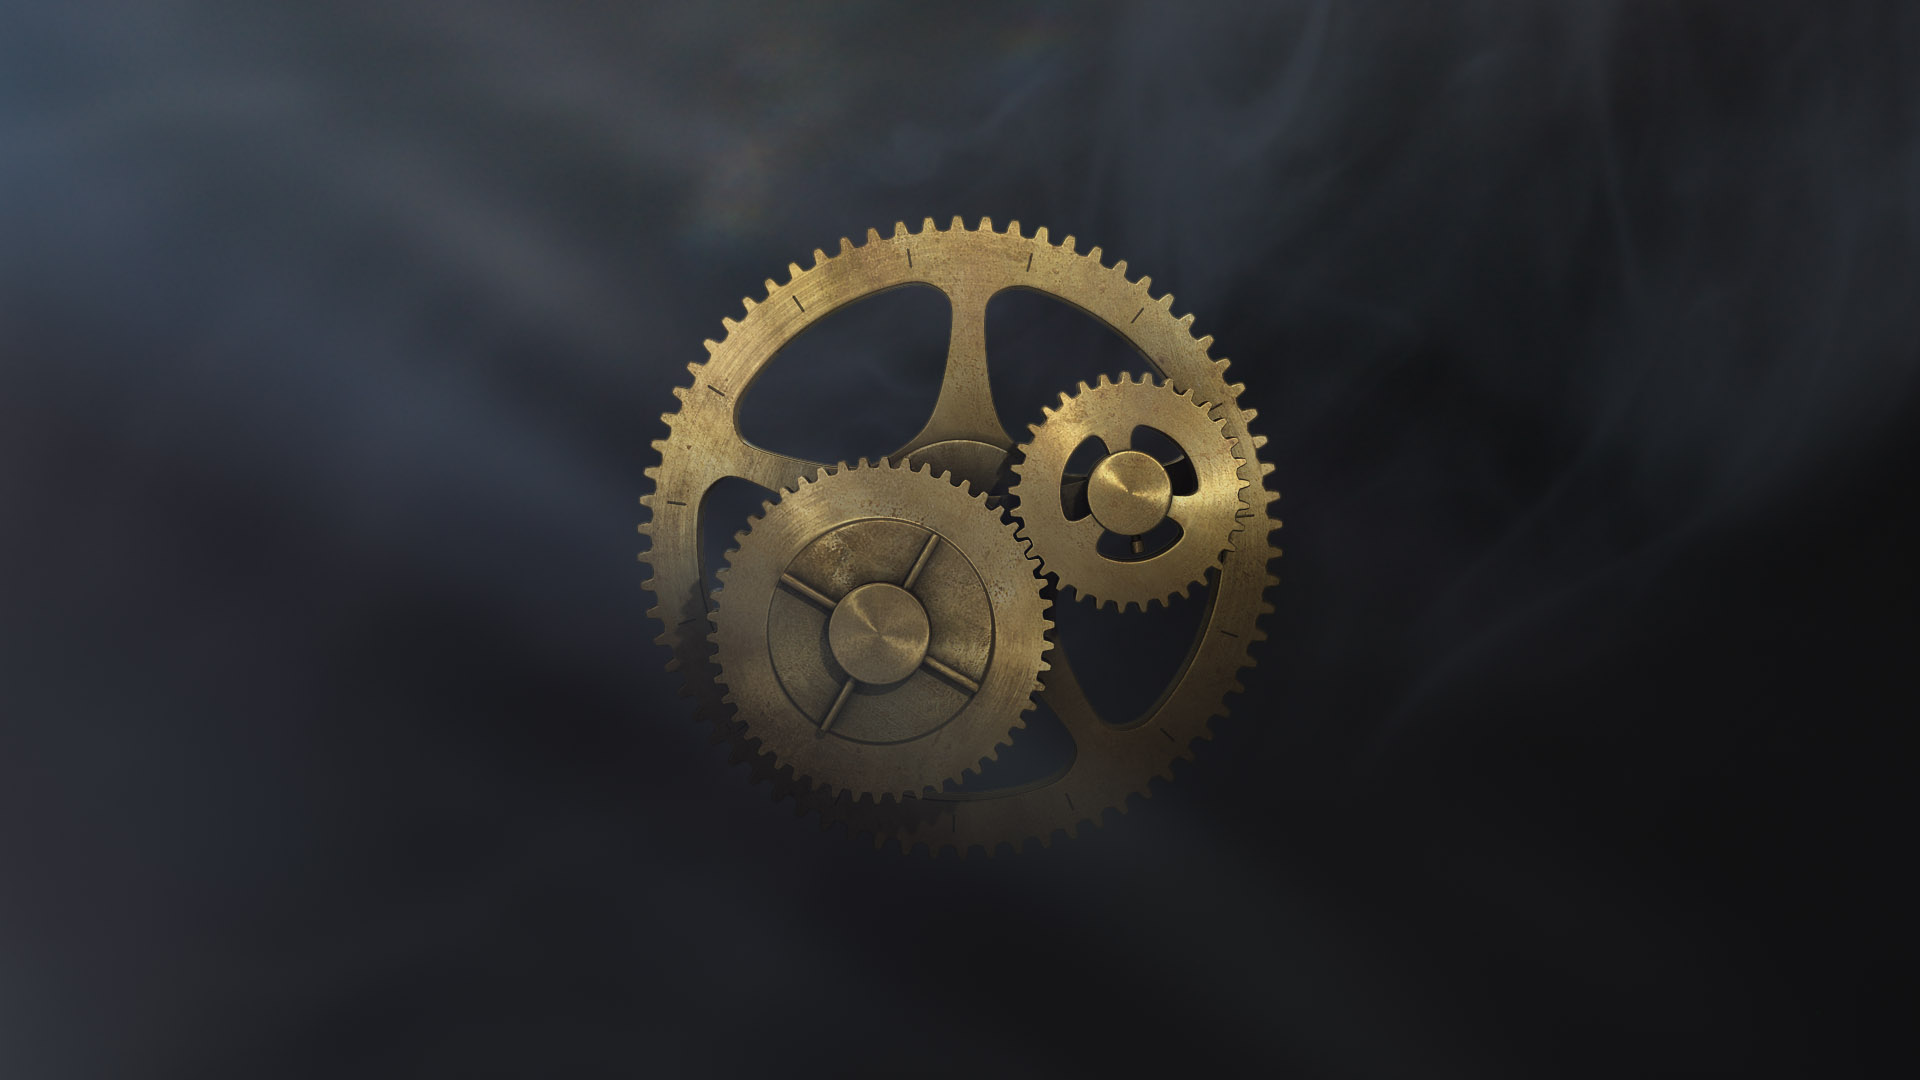 SEI_Gears_EDIT.00380.jpg